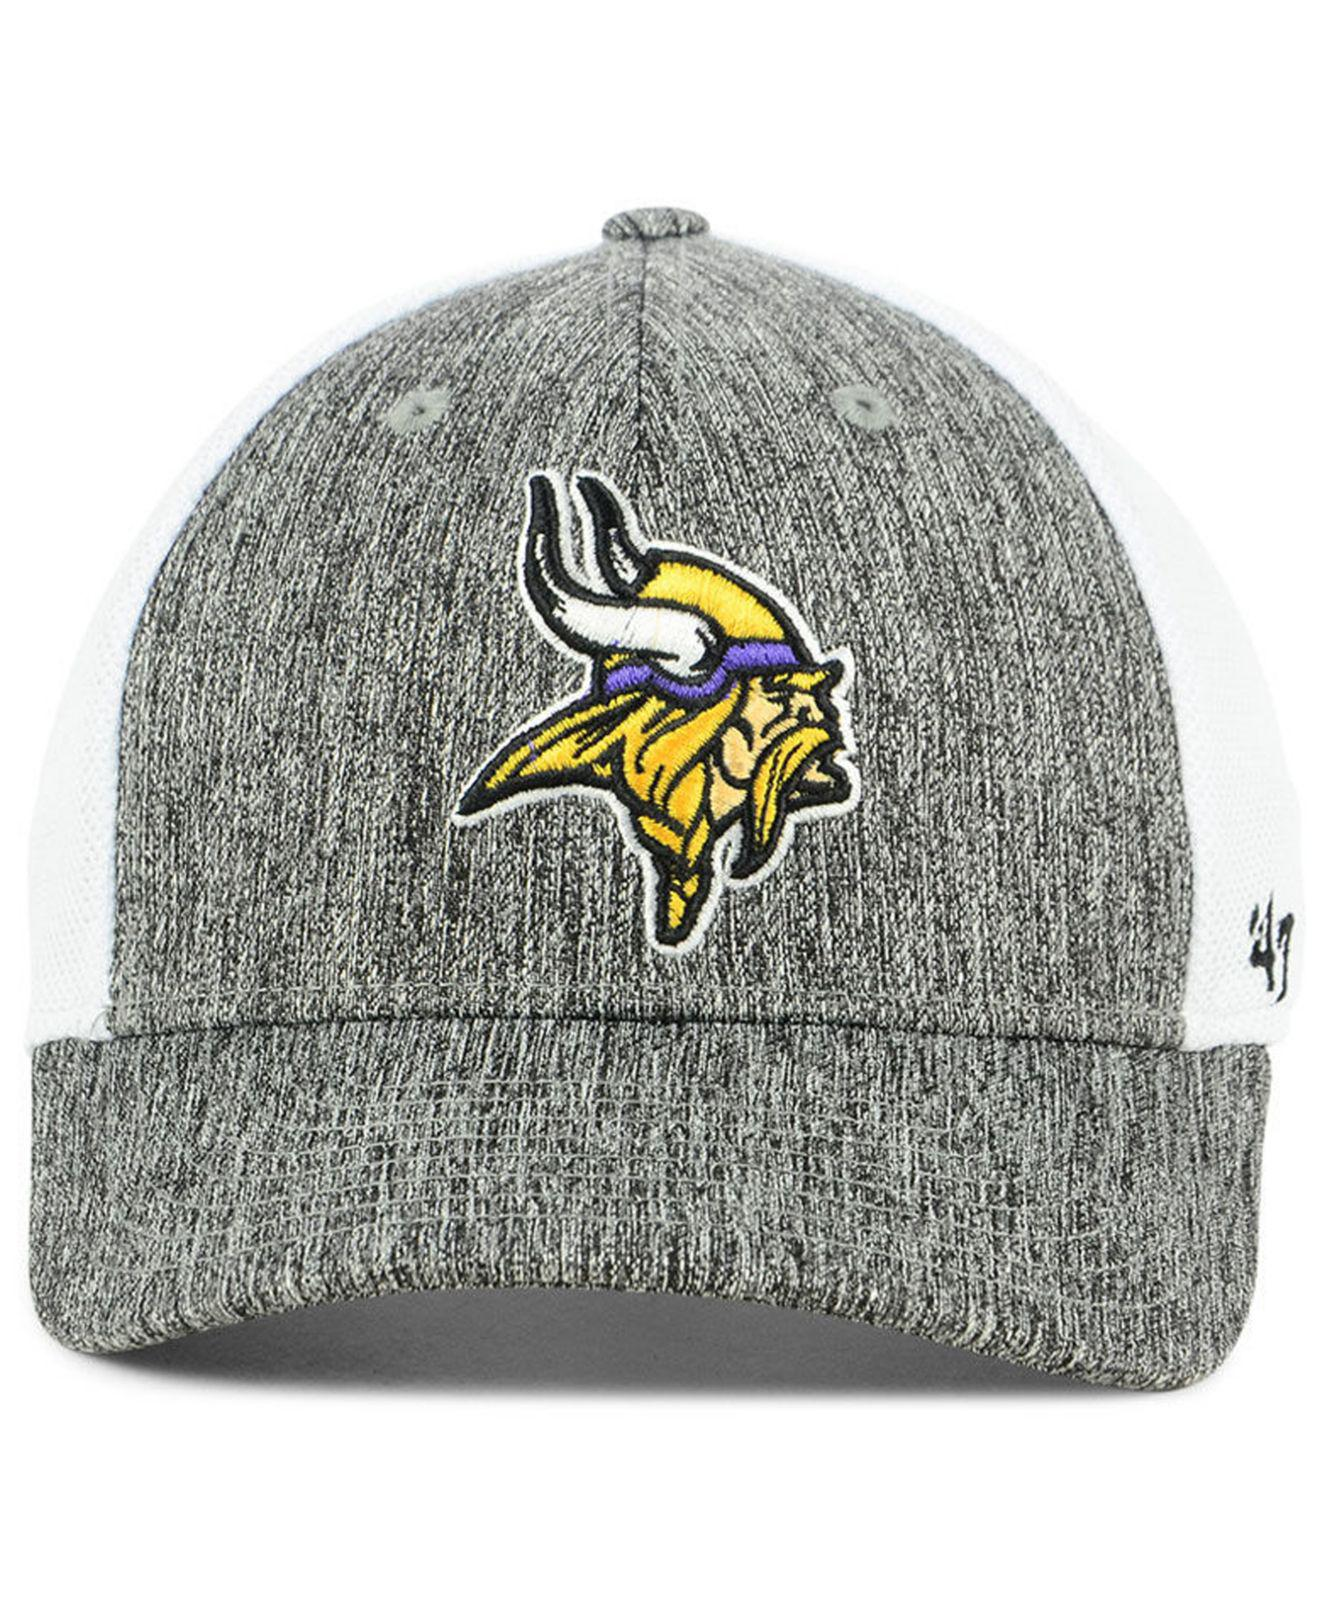 eec5c08717b Lyst - 47 Brand Minnesota Vikings Hazy Flex Contender Stretch Fitted Cap  for Men